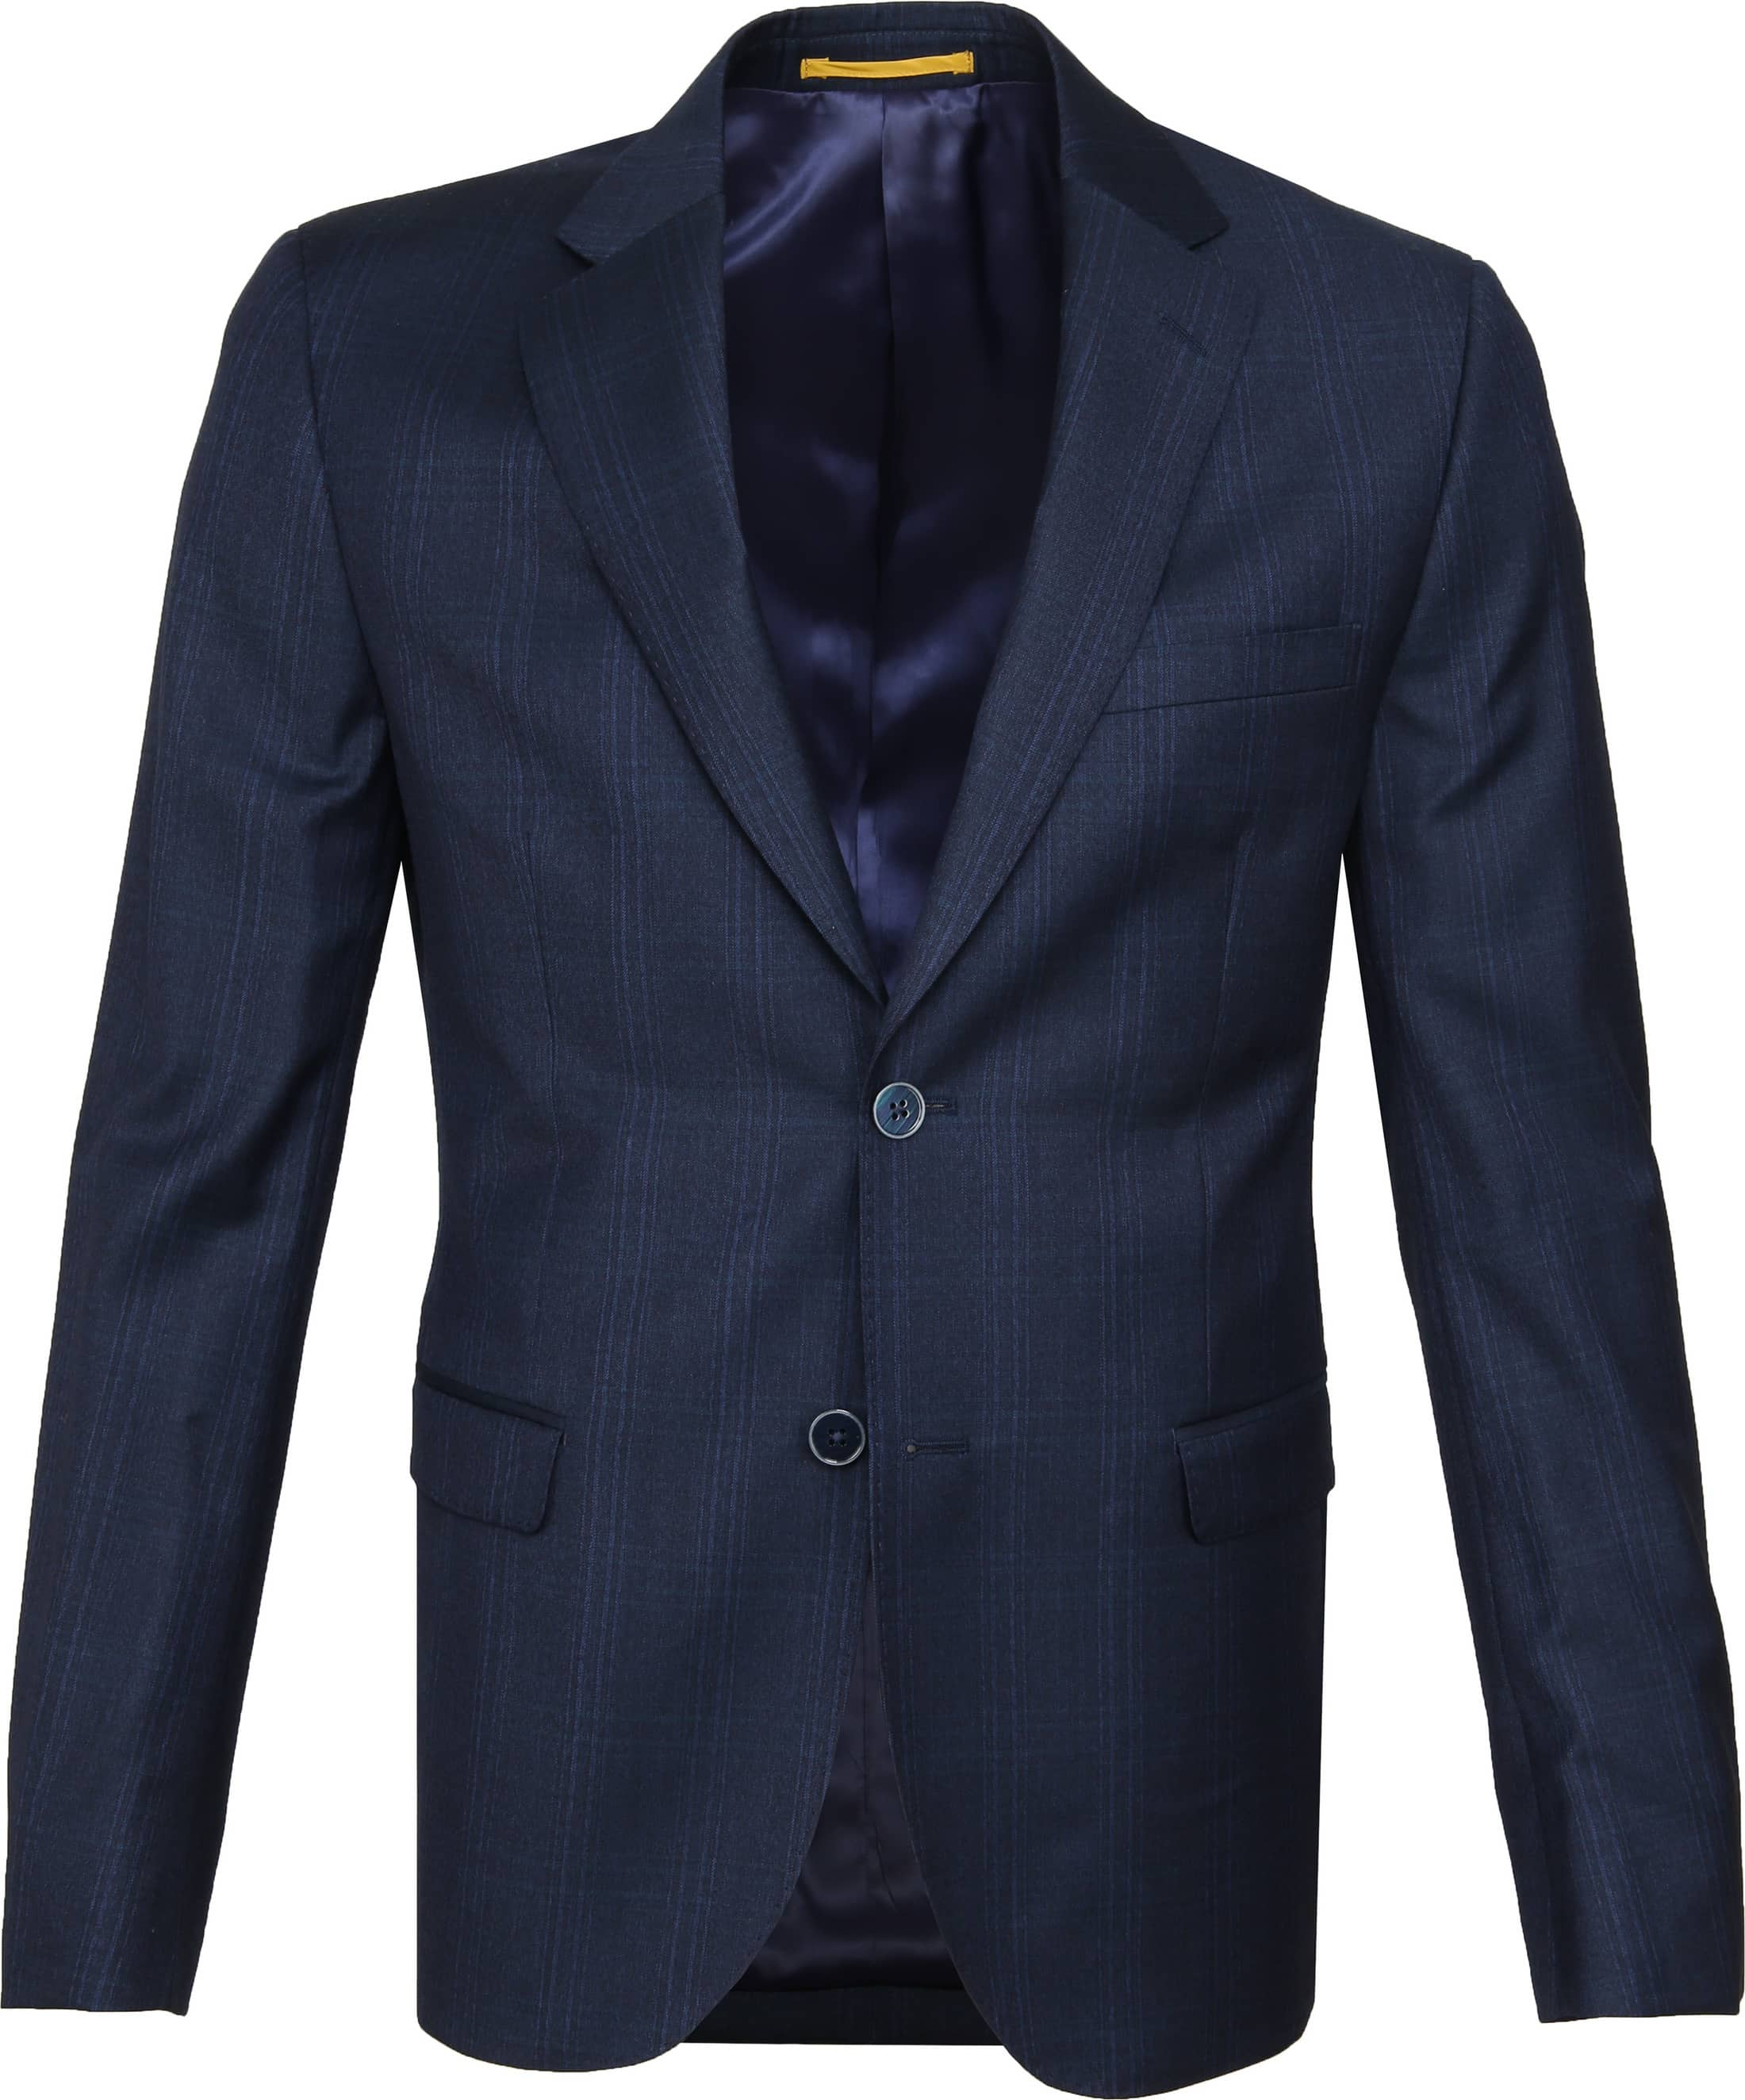 Suitable Suit Strato Navy Checks photo 2